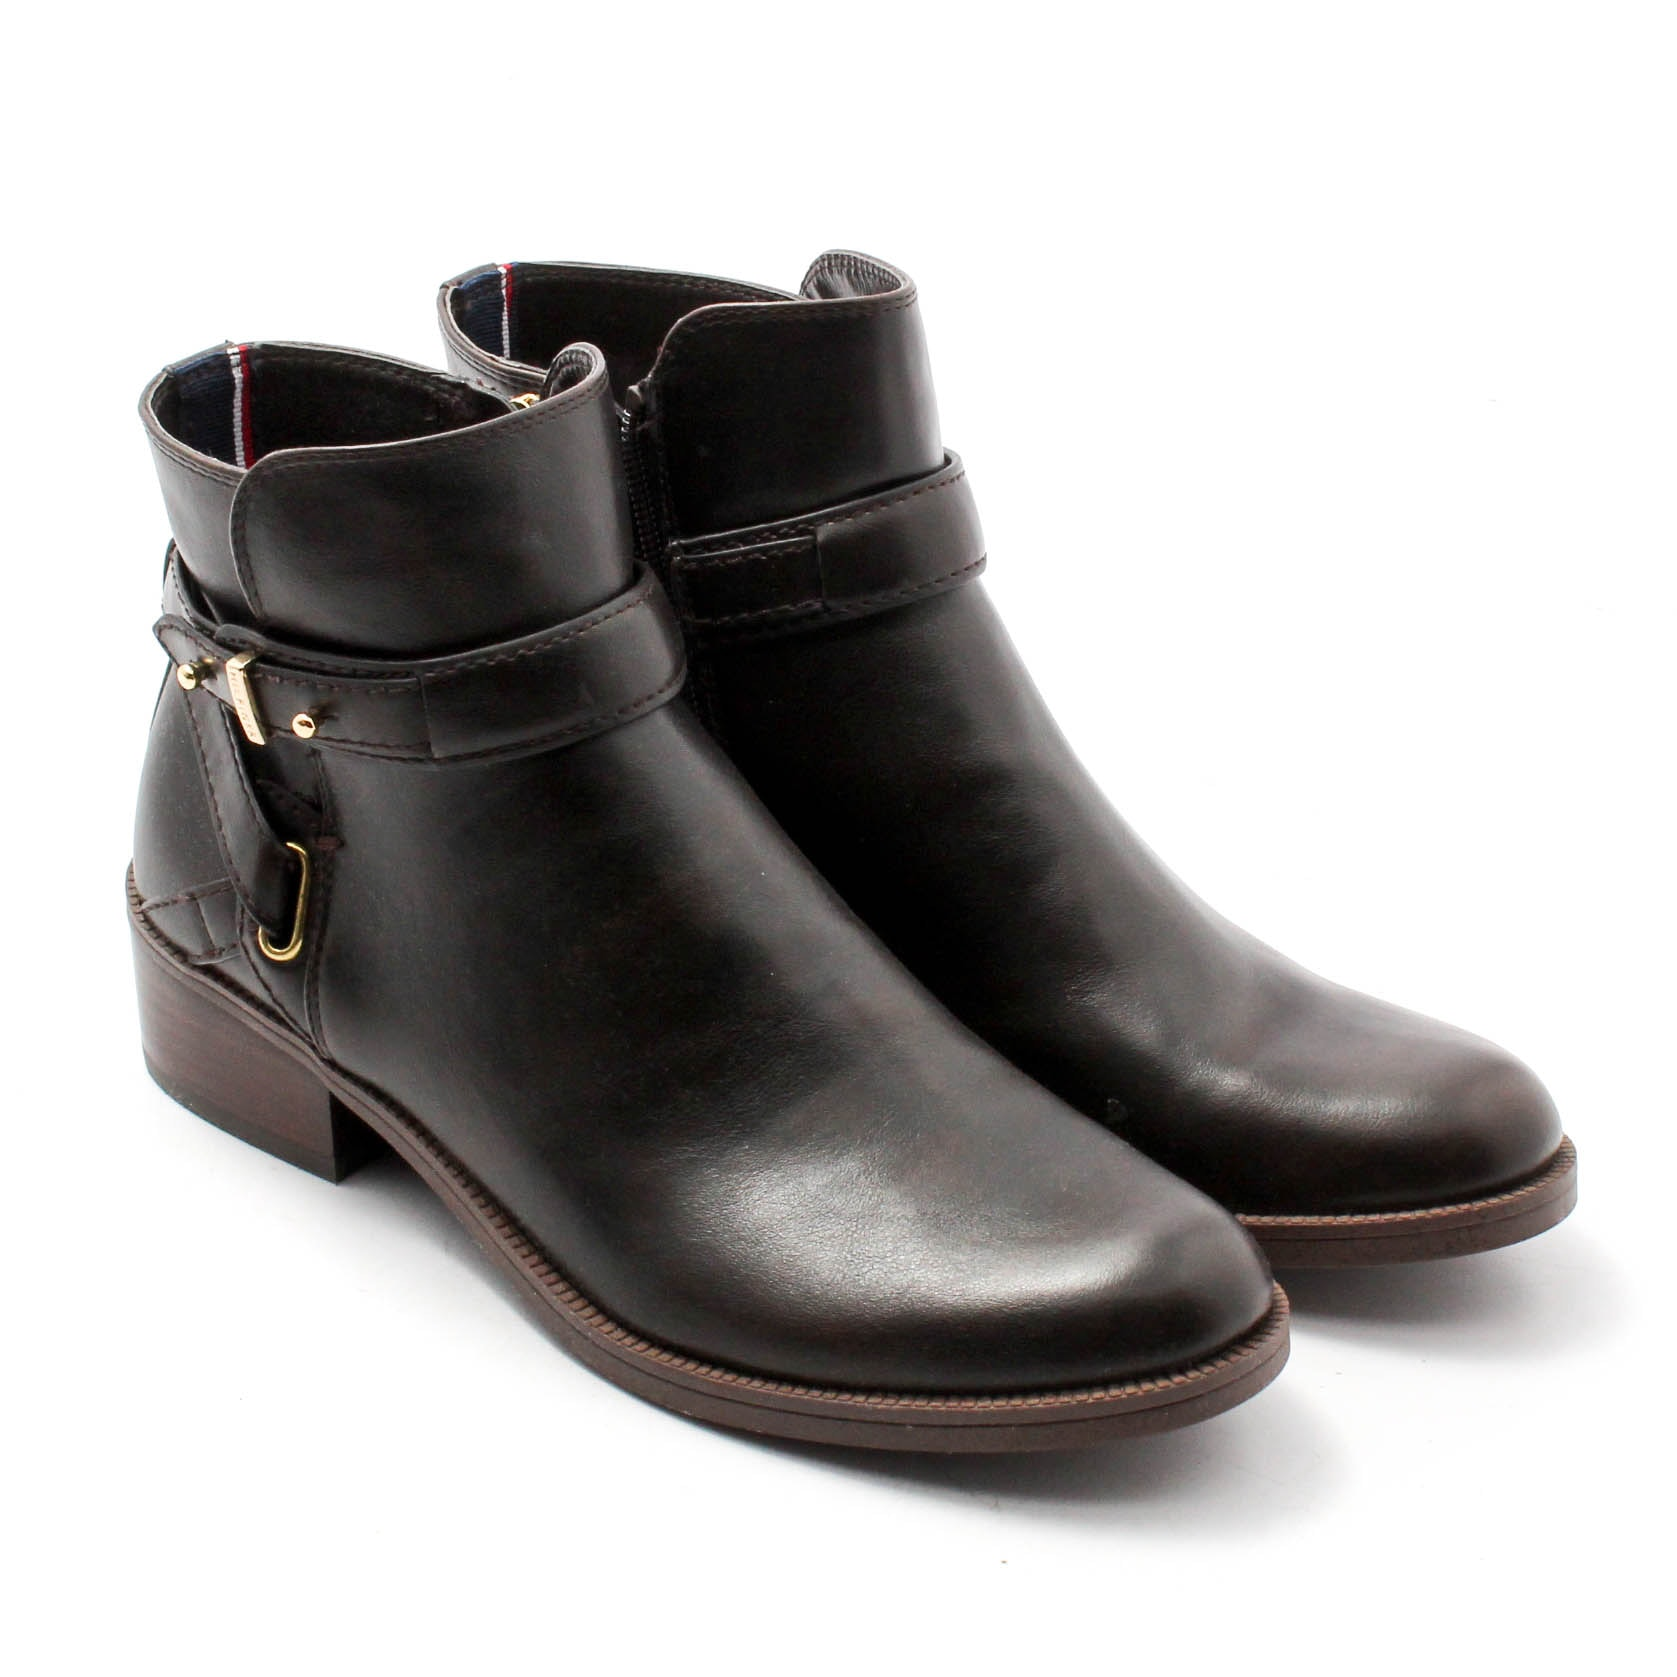 Tommy Hilfiger Black Leather Ankle Boots